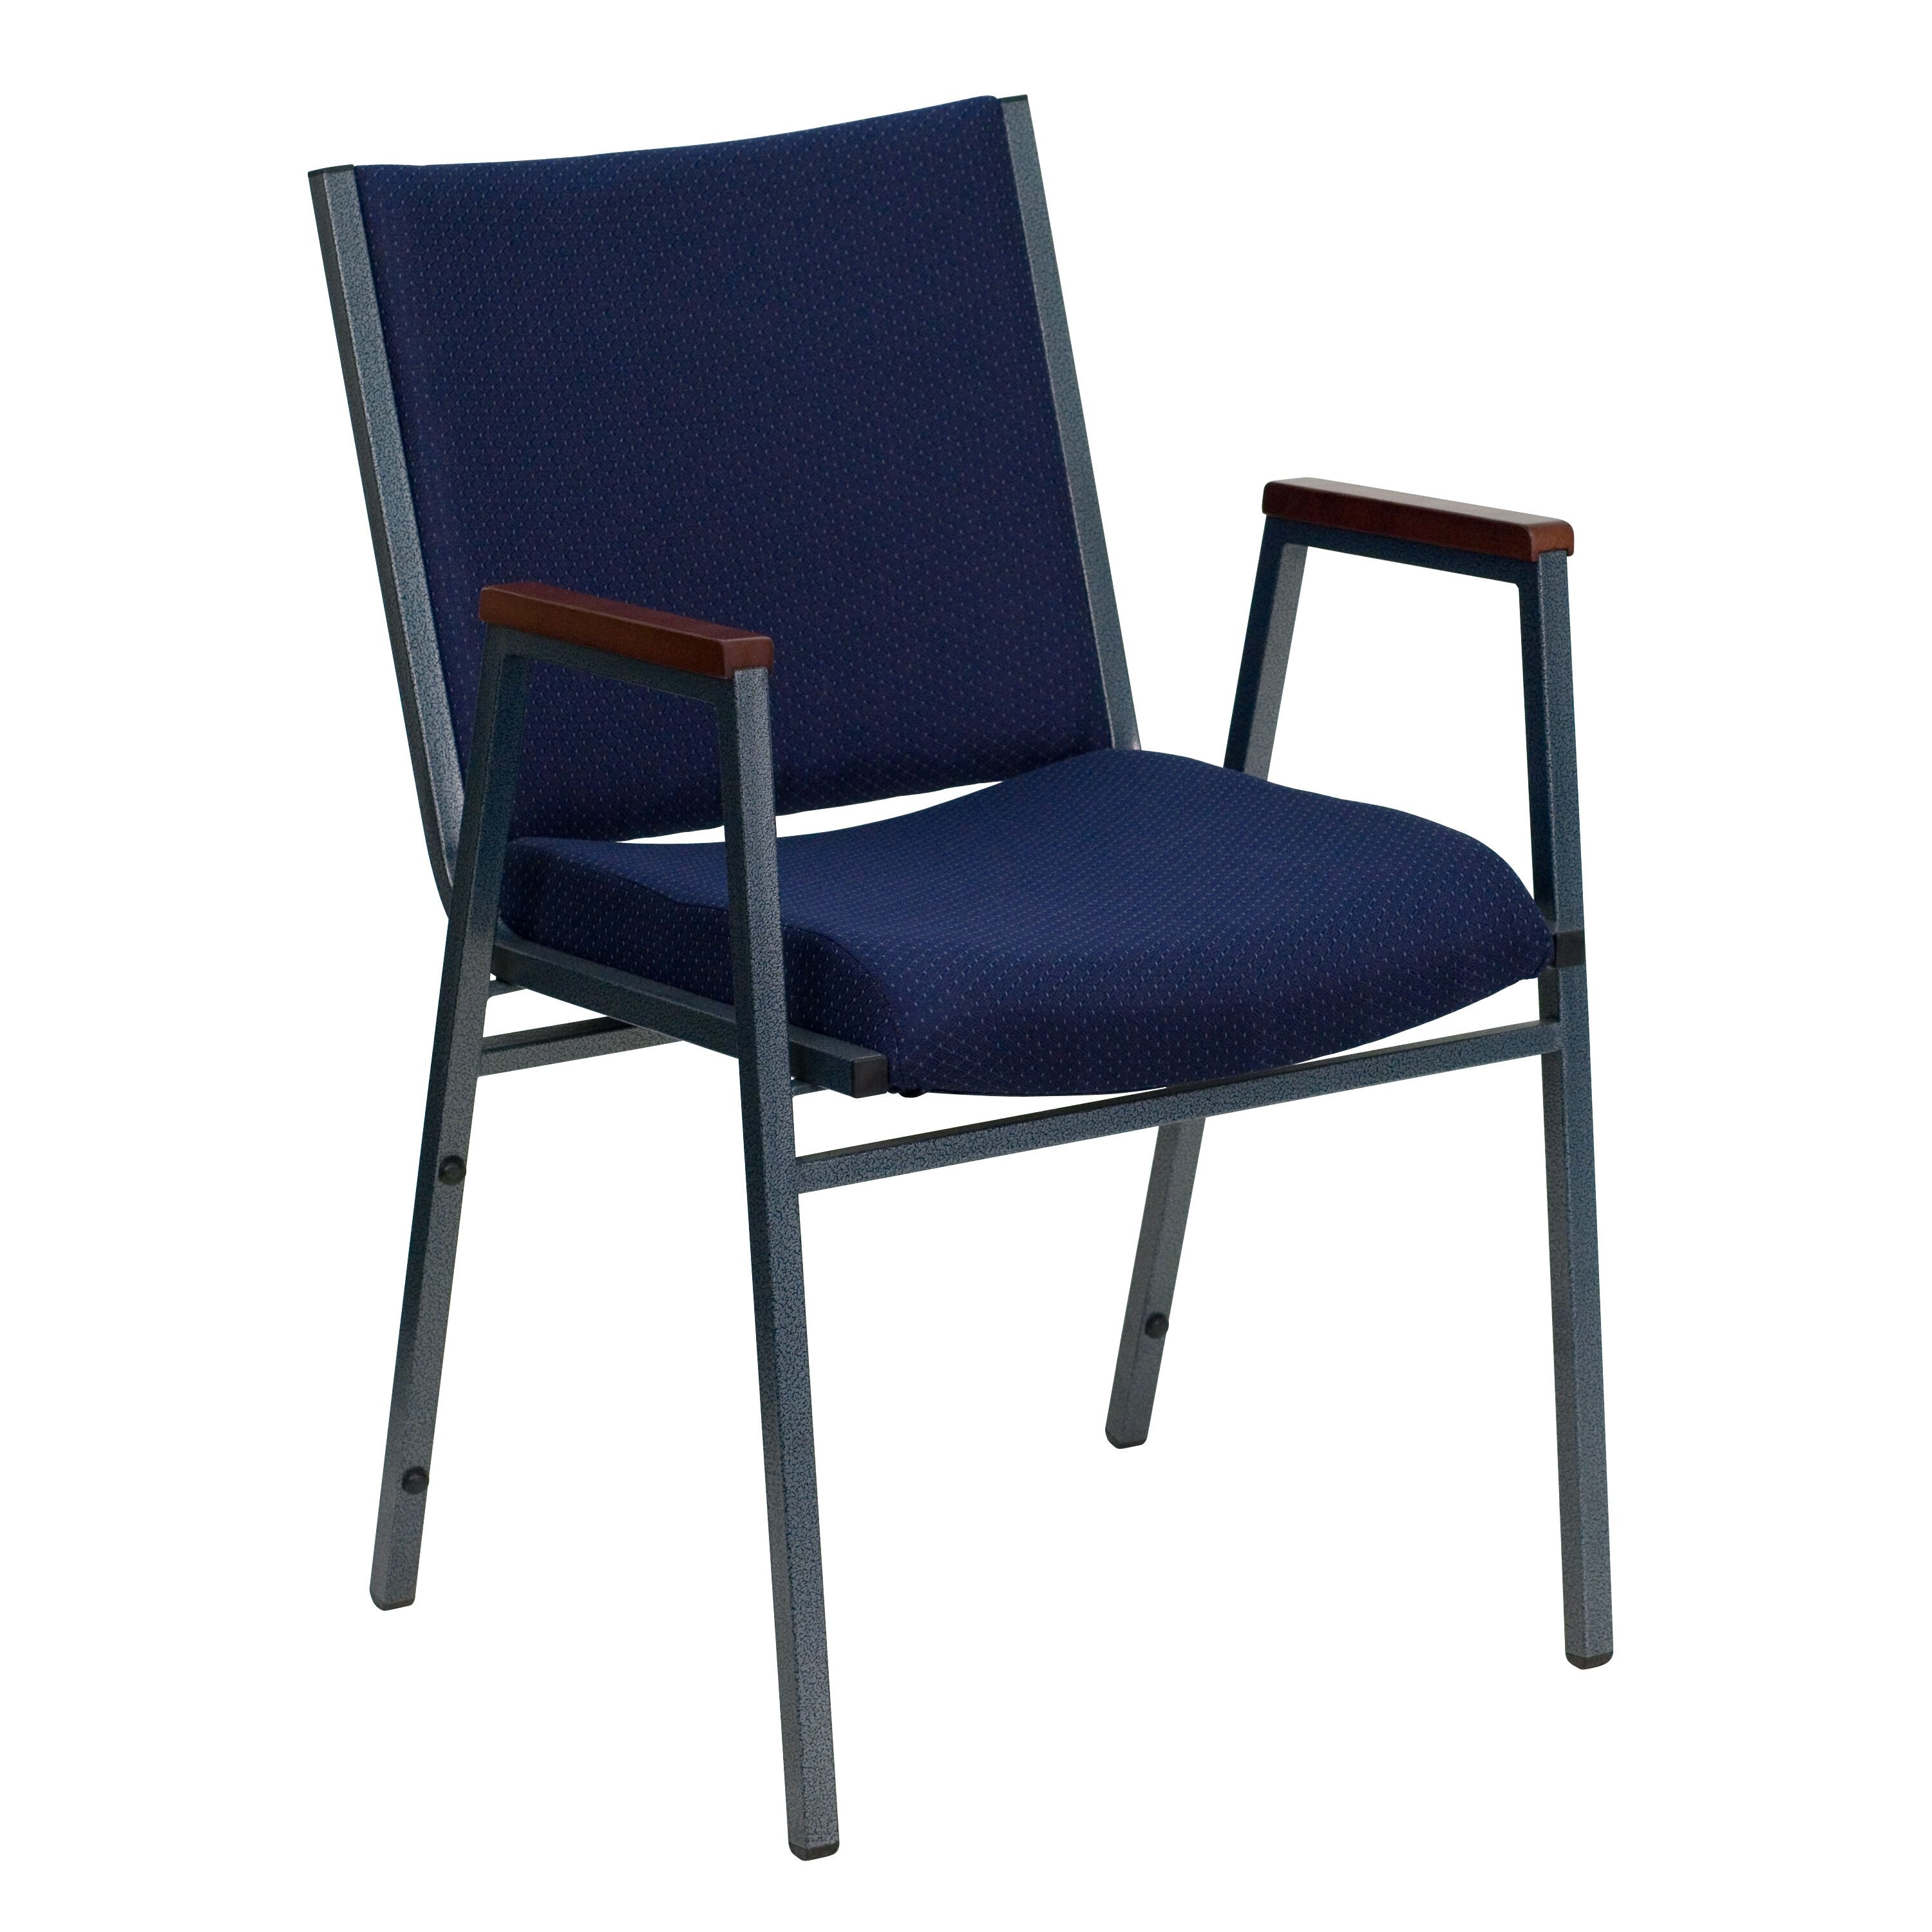 chairs 4 less walking stick chair south africa navy fabric stack armchair xu 60154 nvy gg